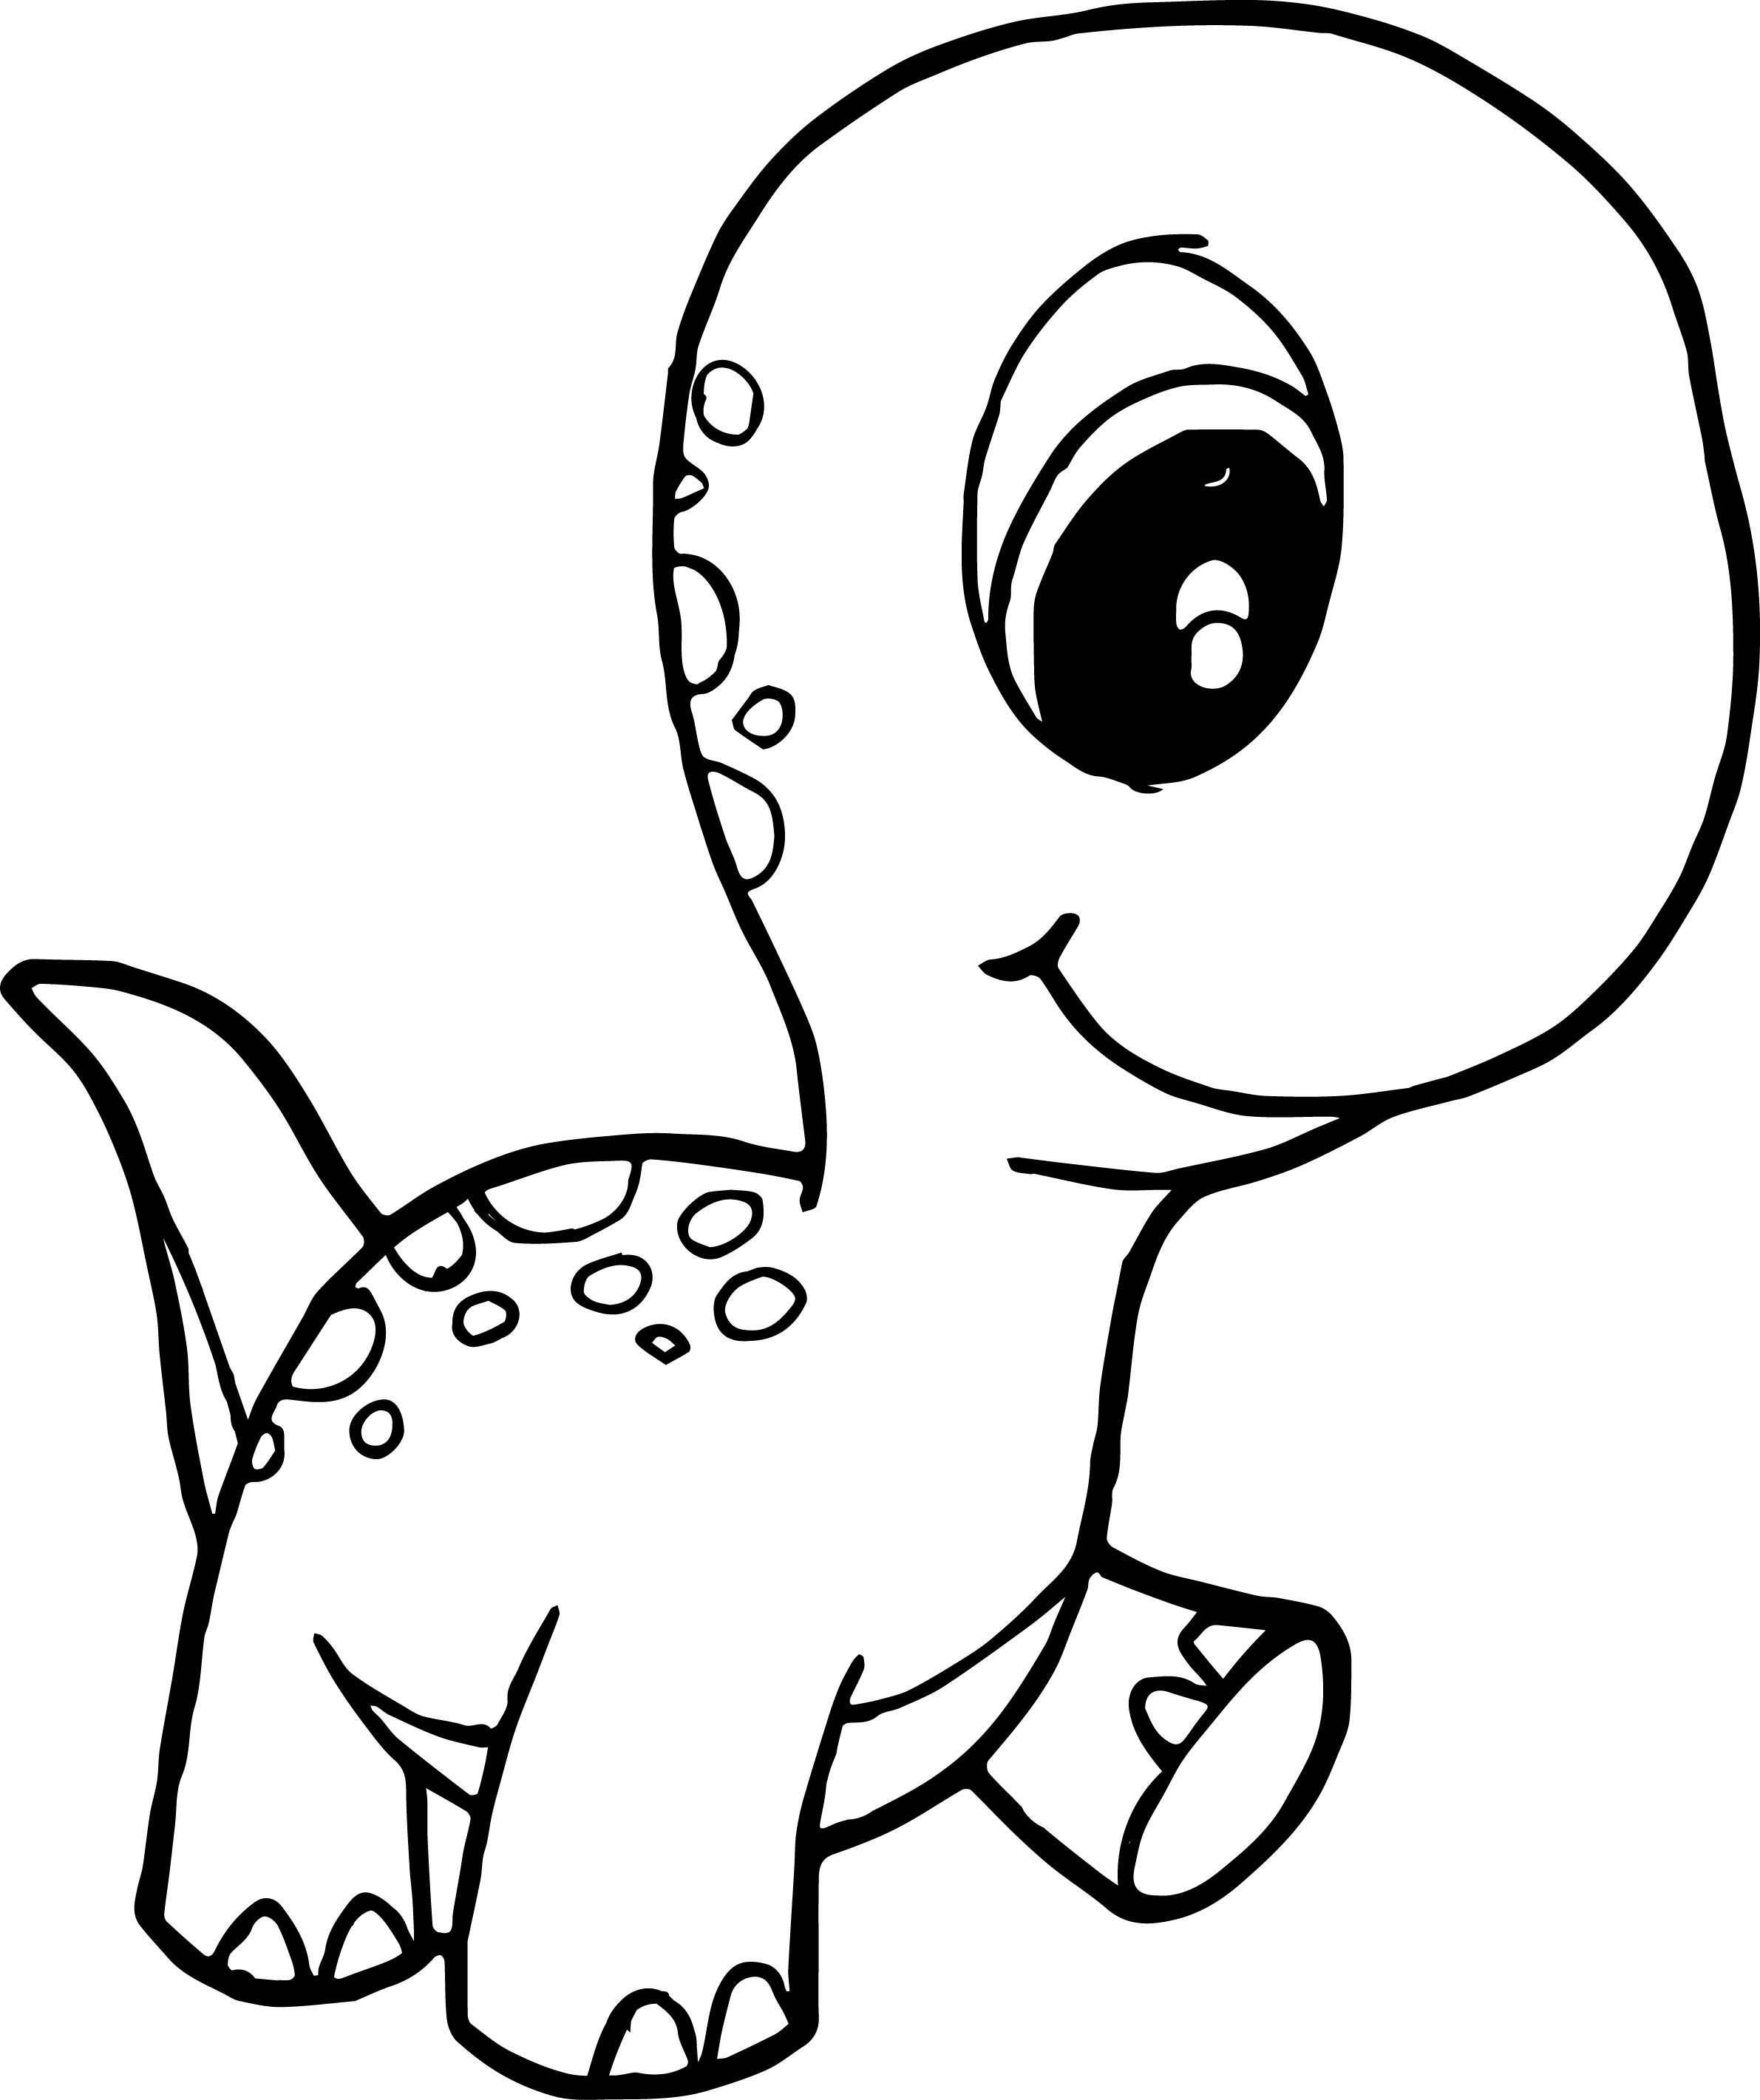 Dinosaur Cute Baby Walking Coloring Page